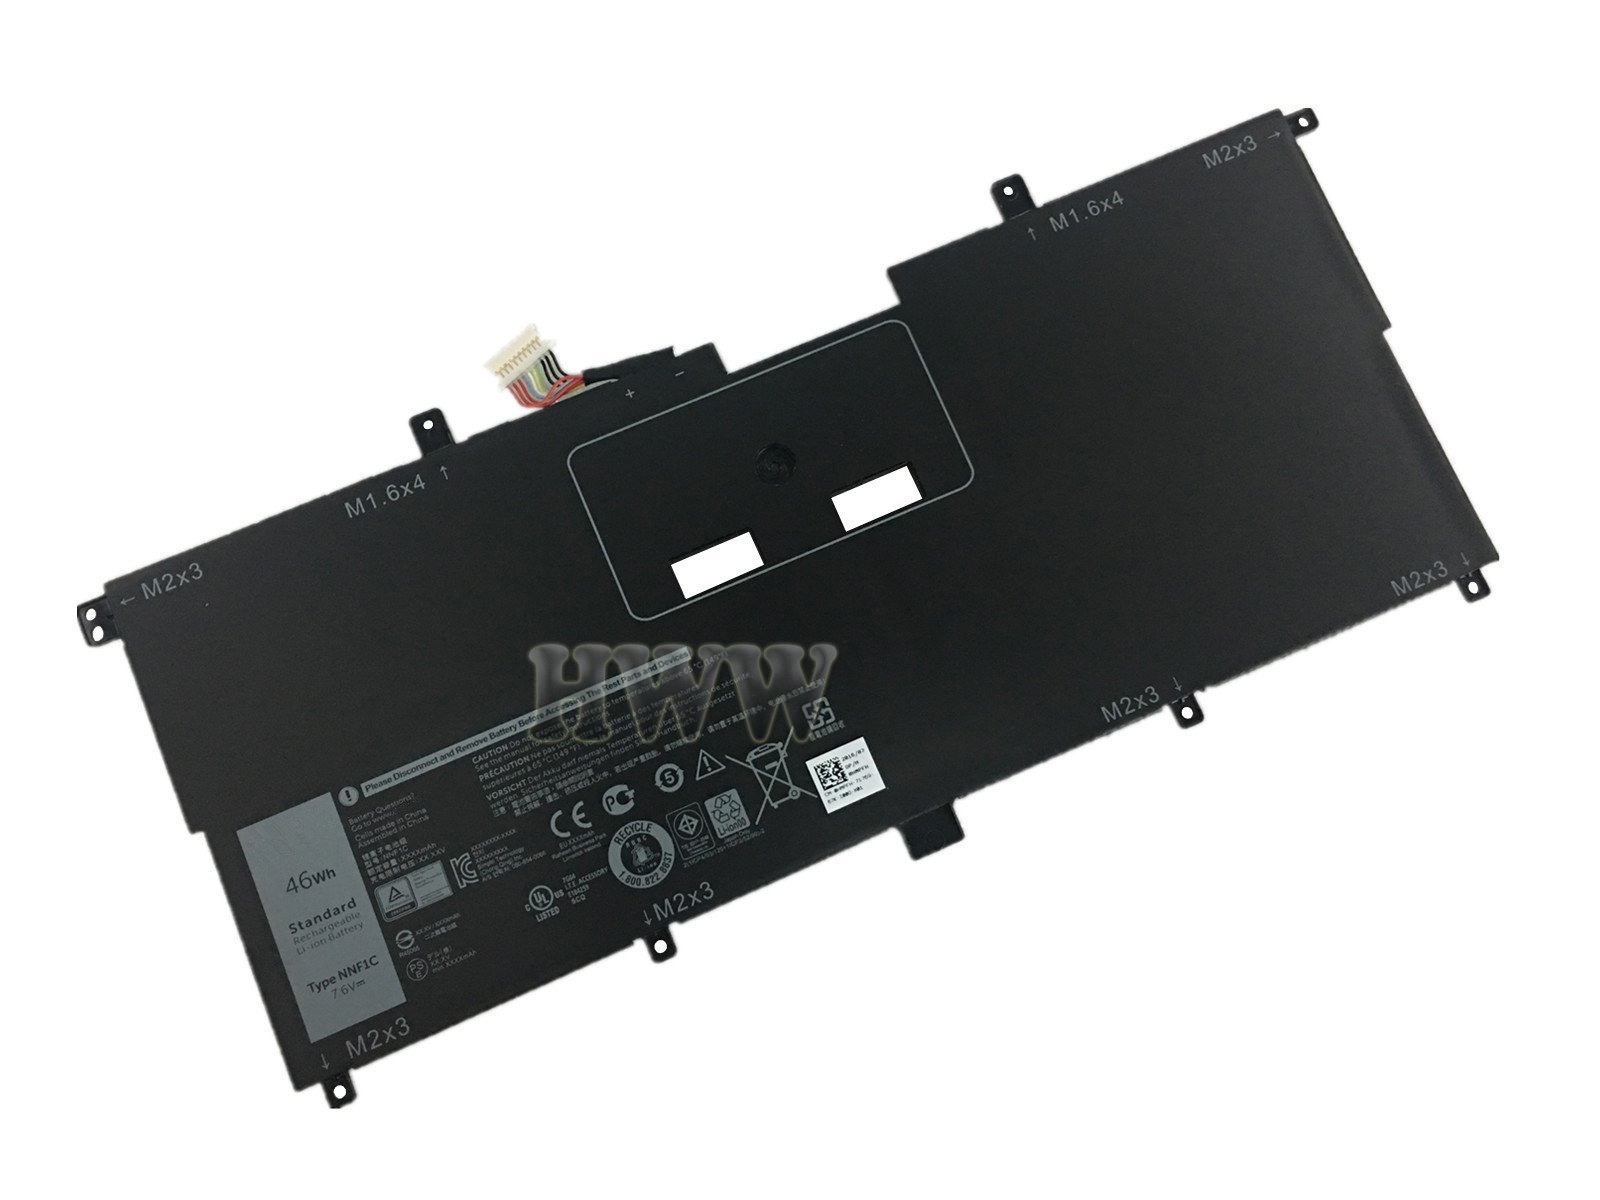 ZTHY NNF1C Laptop Battery Replacement for Dell XPS 13 9365 2in1 ...